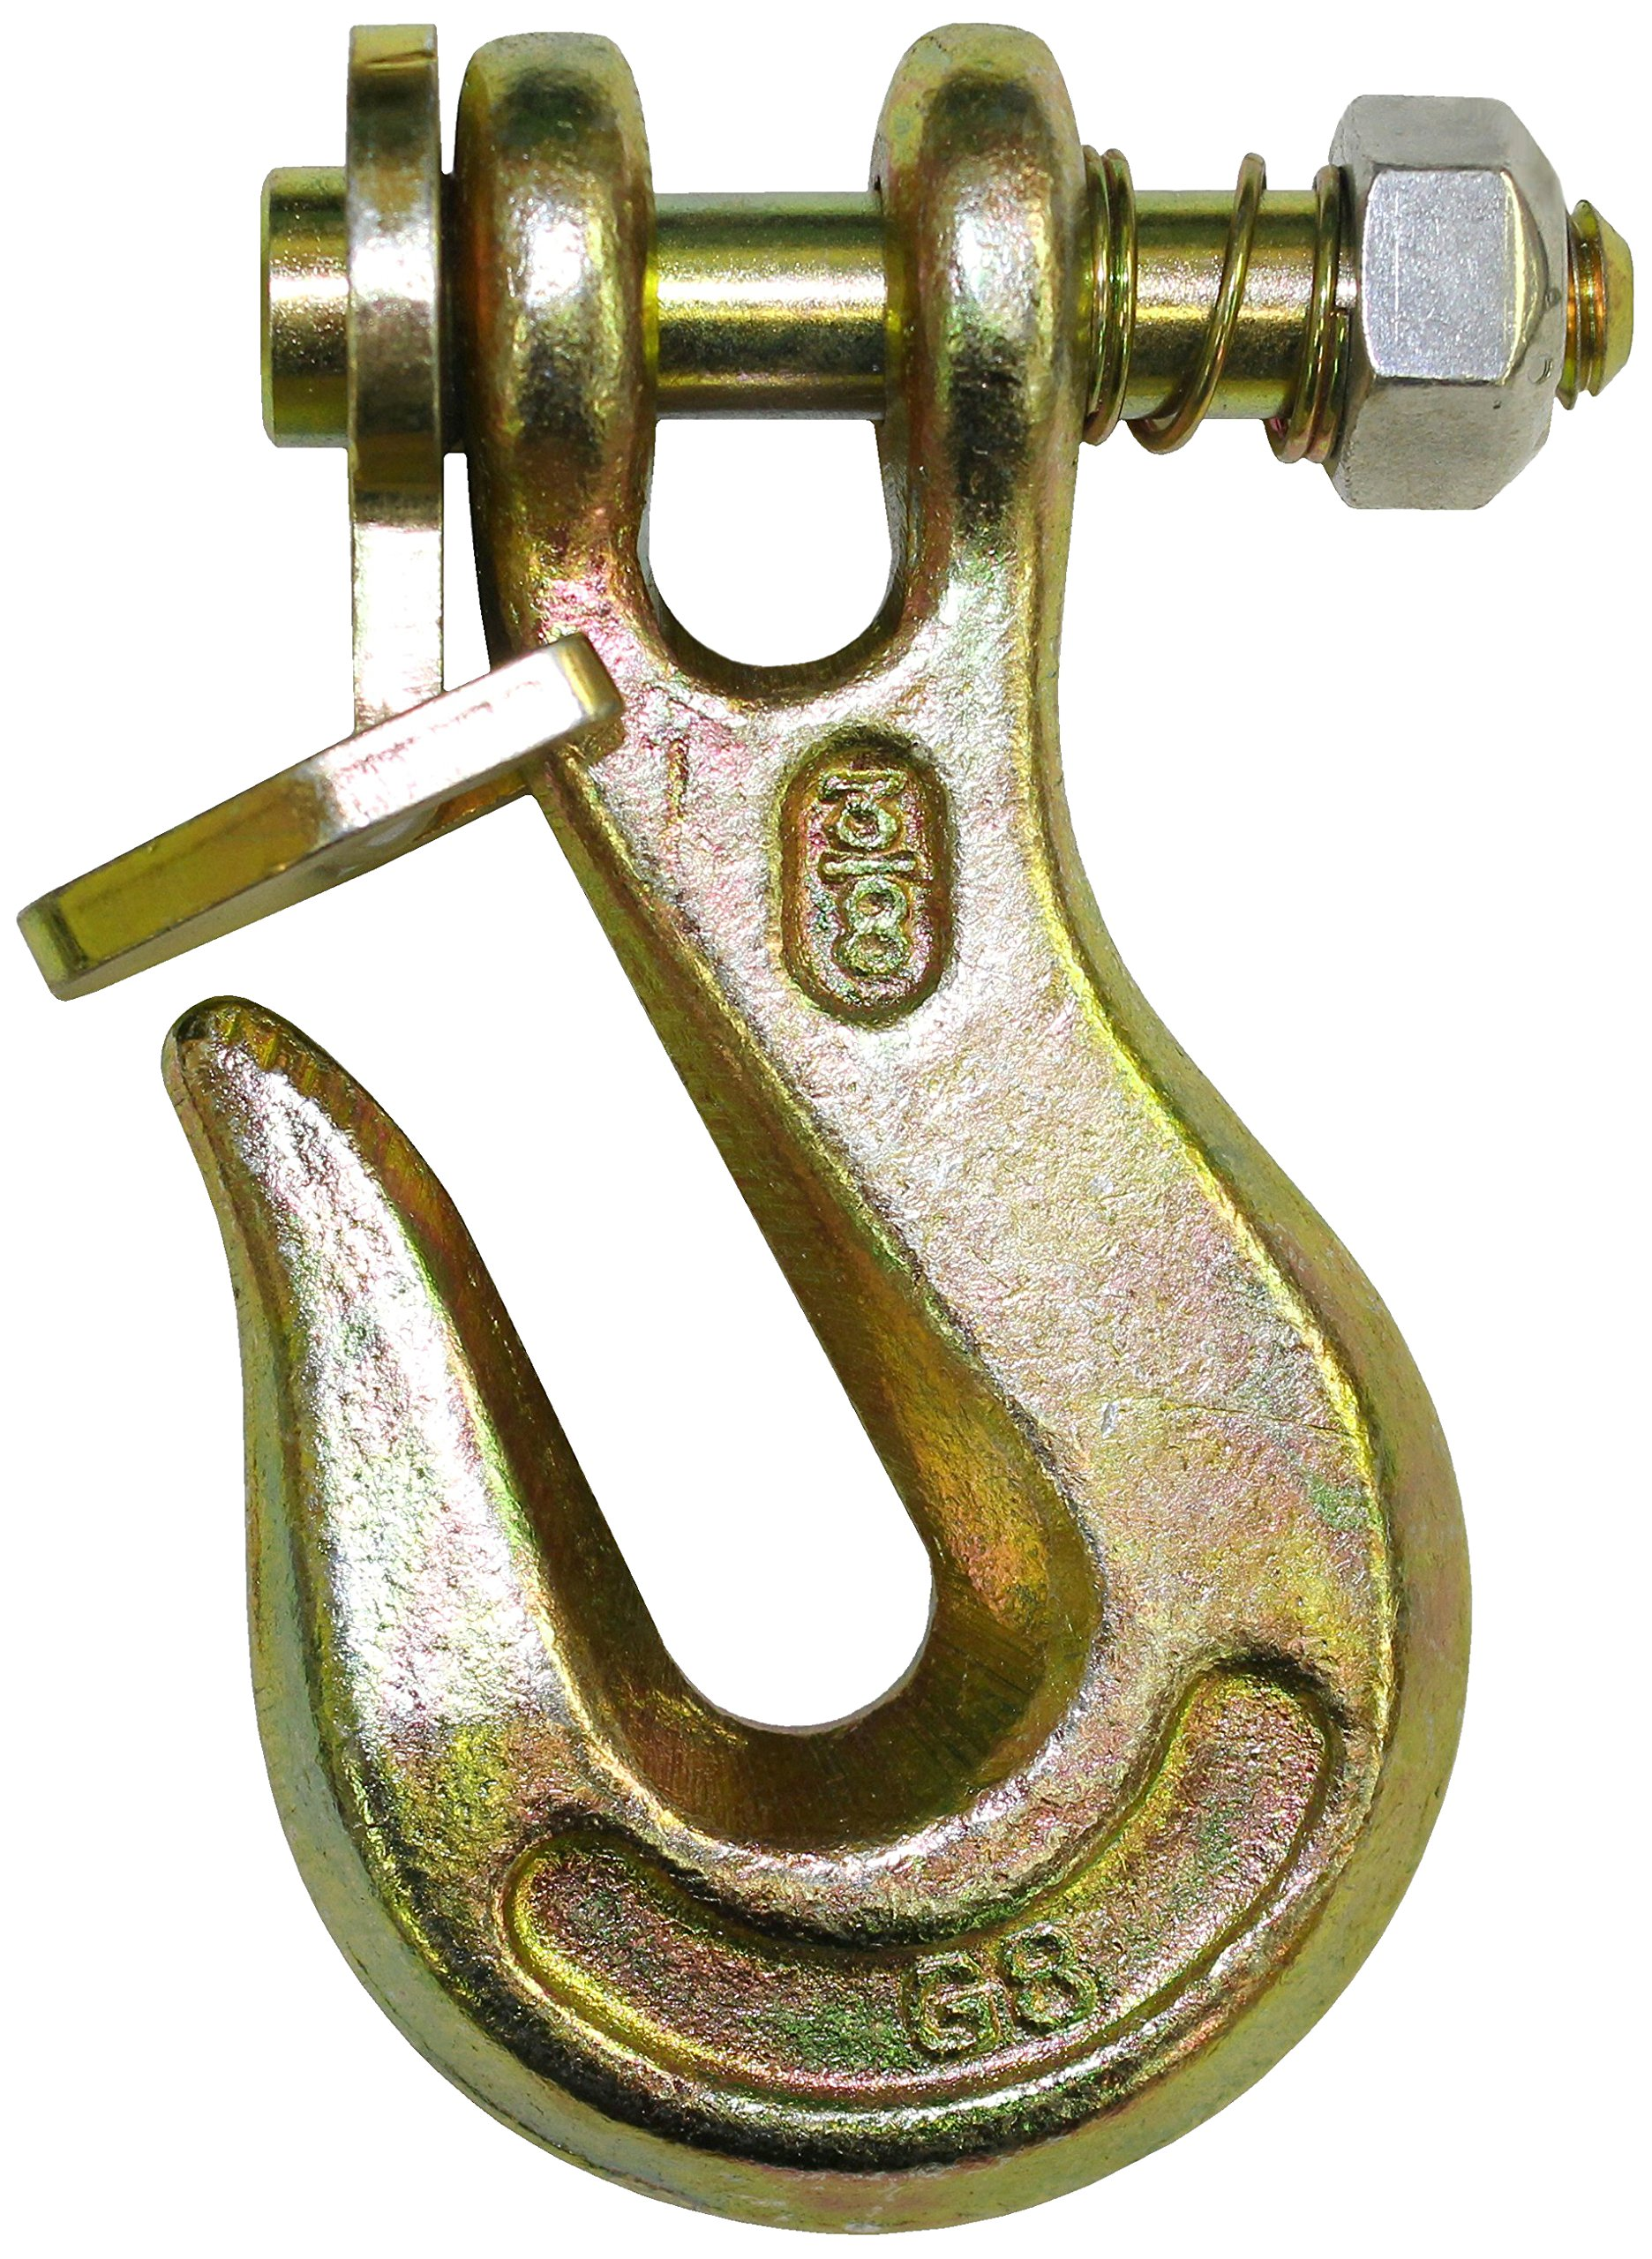 B/A Products G8-200-516 Twist Lock Grab Hook, Patented, 4'' Length, 4500 lb. Working Load Limit